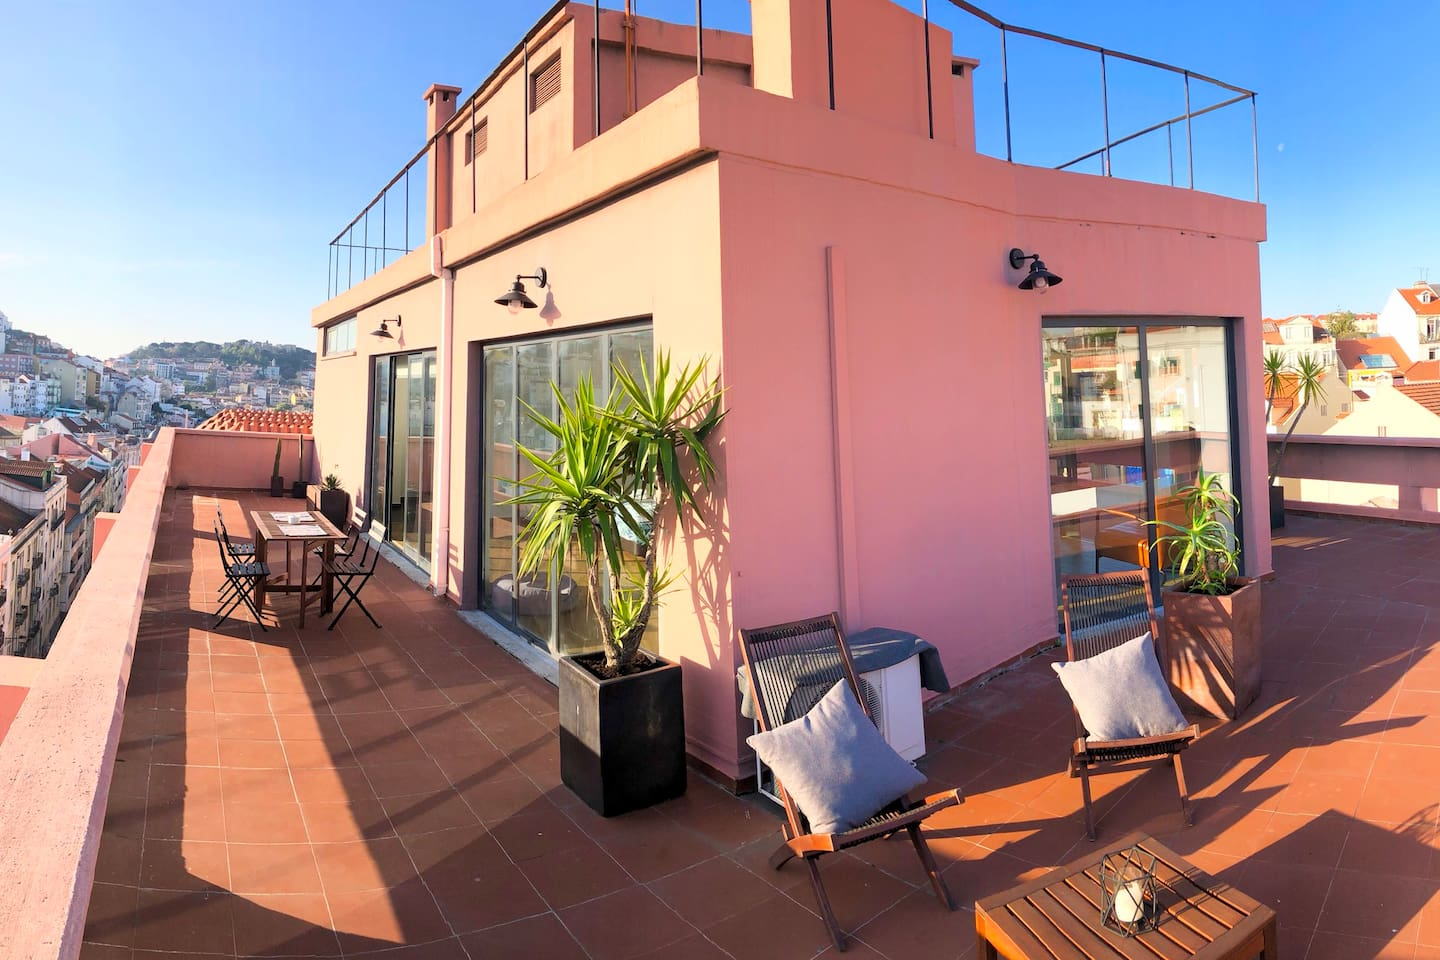 Top floor studio flat with private (almost 360) terrace. This is the taller building in the area with fantastic view over Lisbon